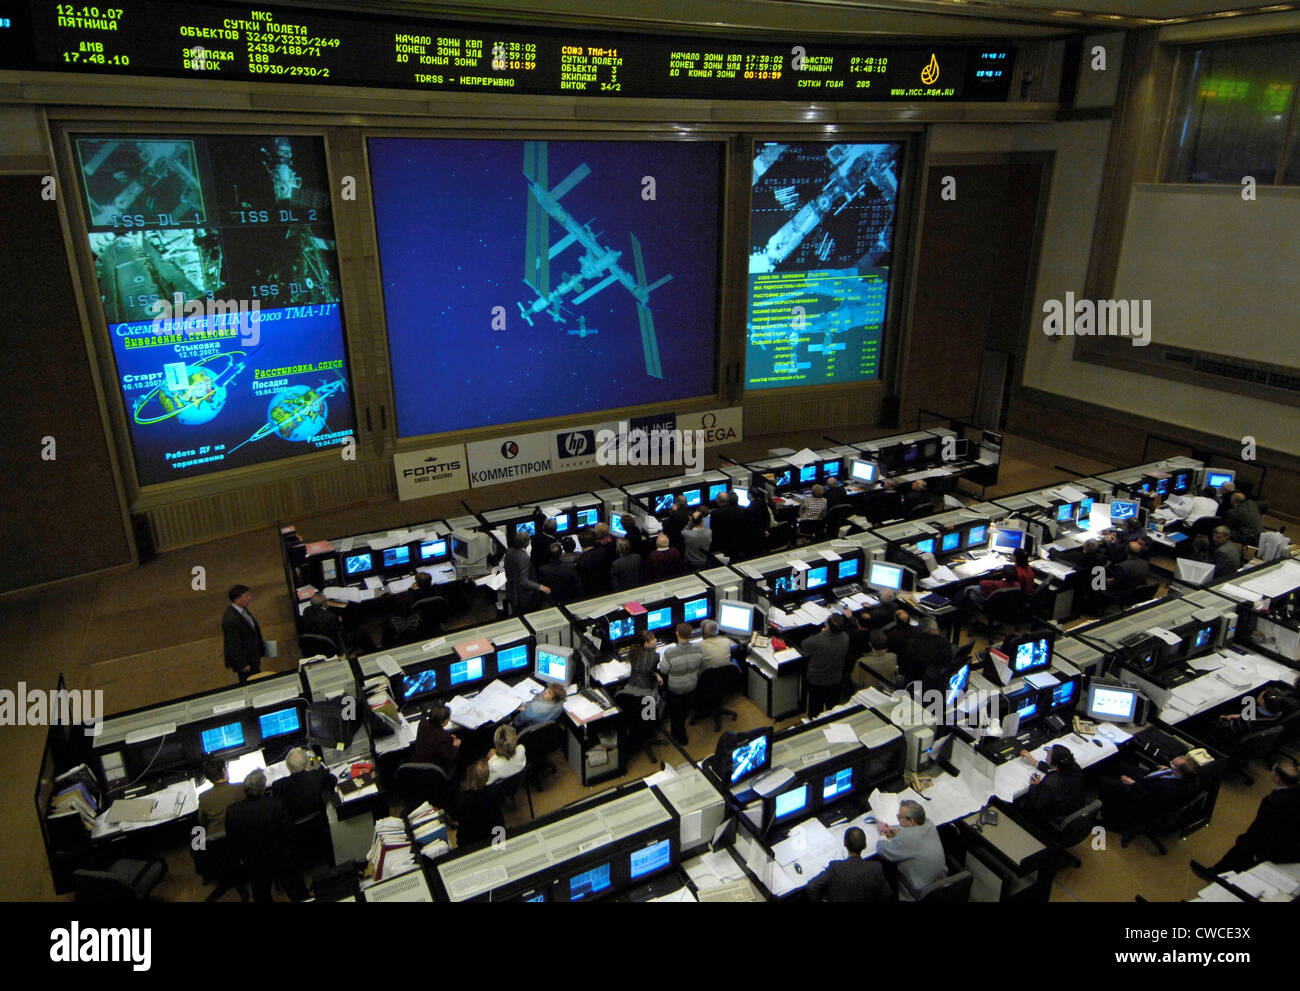 Mission Control Monitor : Russian mission control center in korolev outside moscow